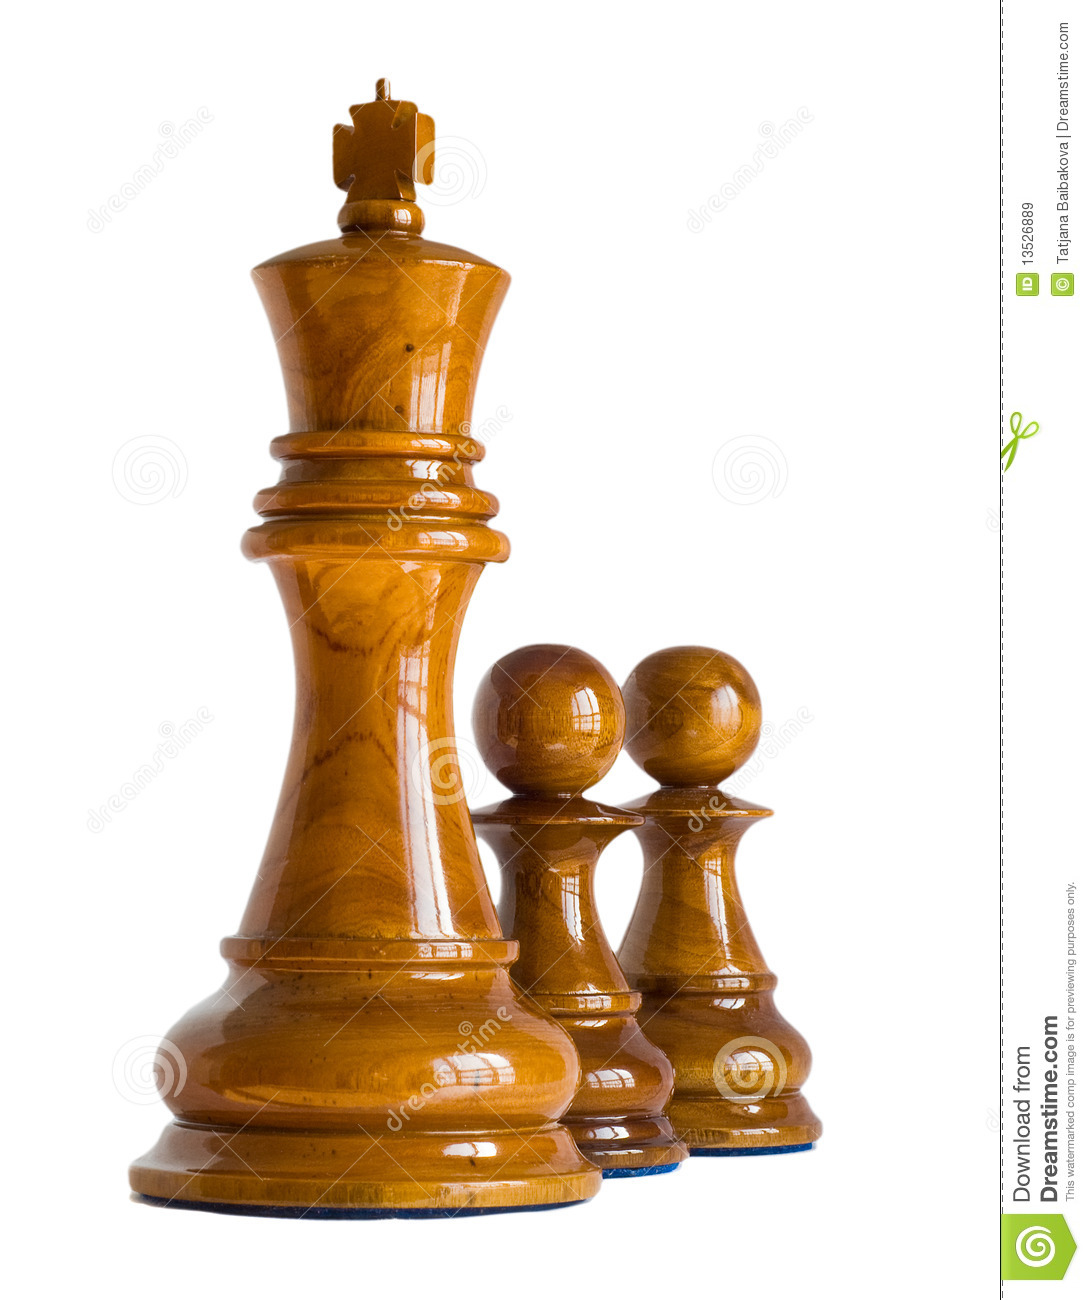 royalty free chess images relationship